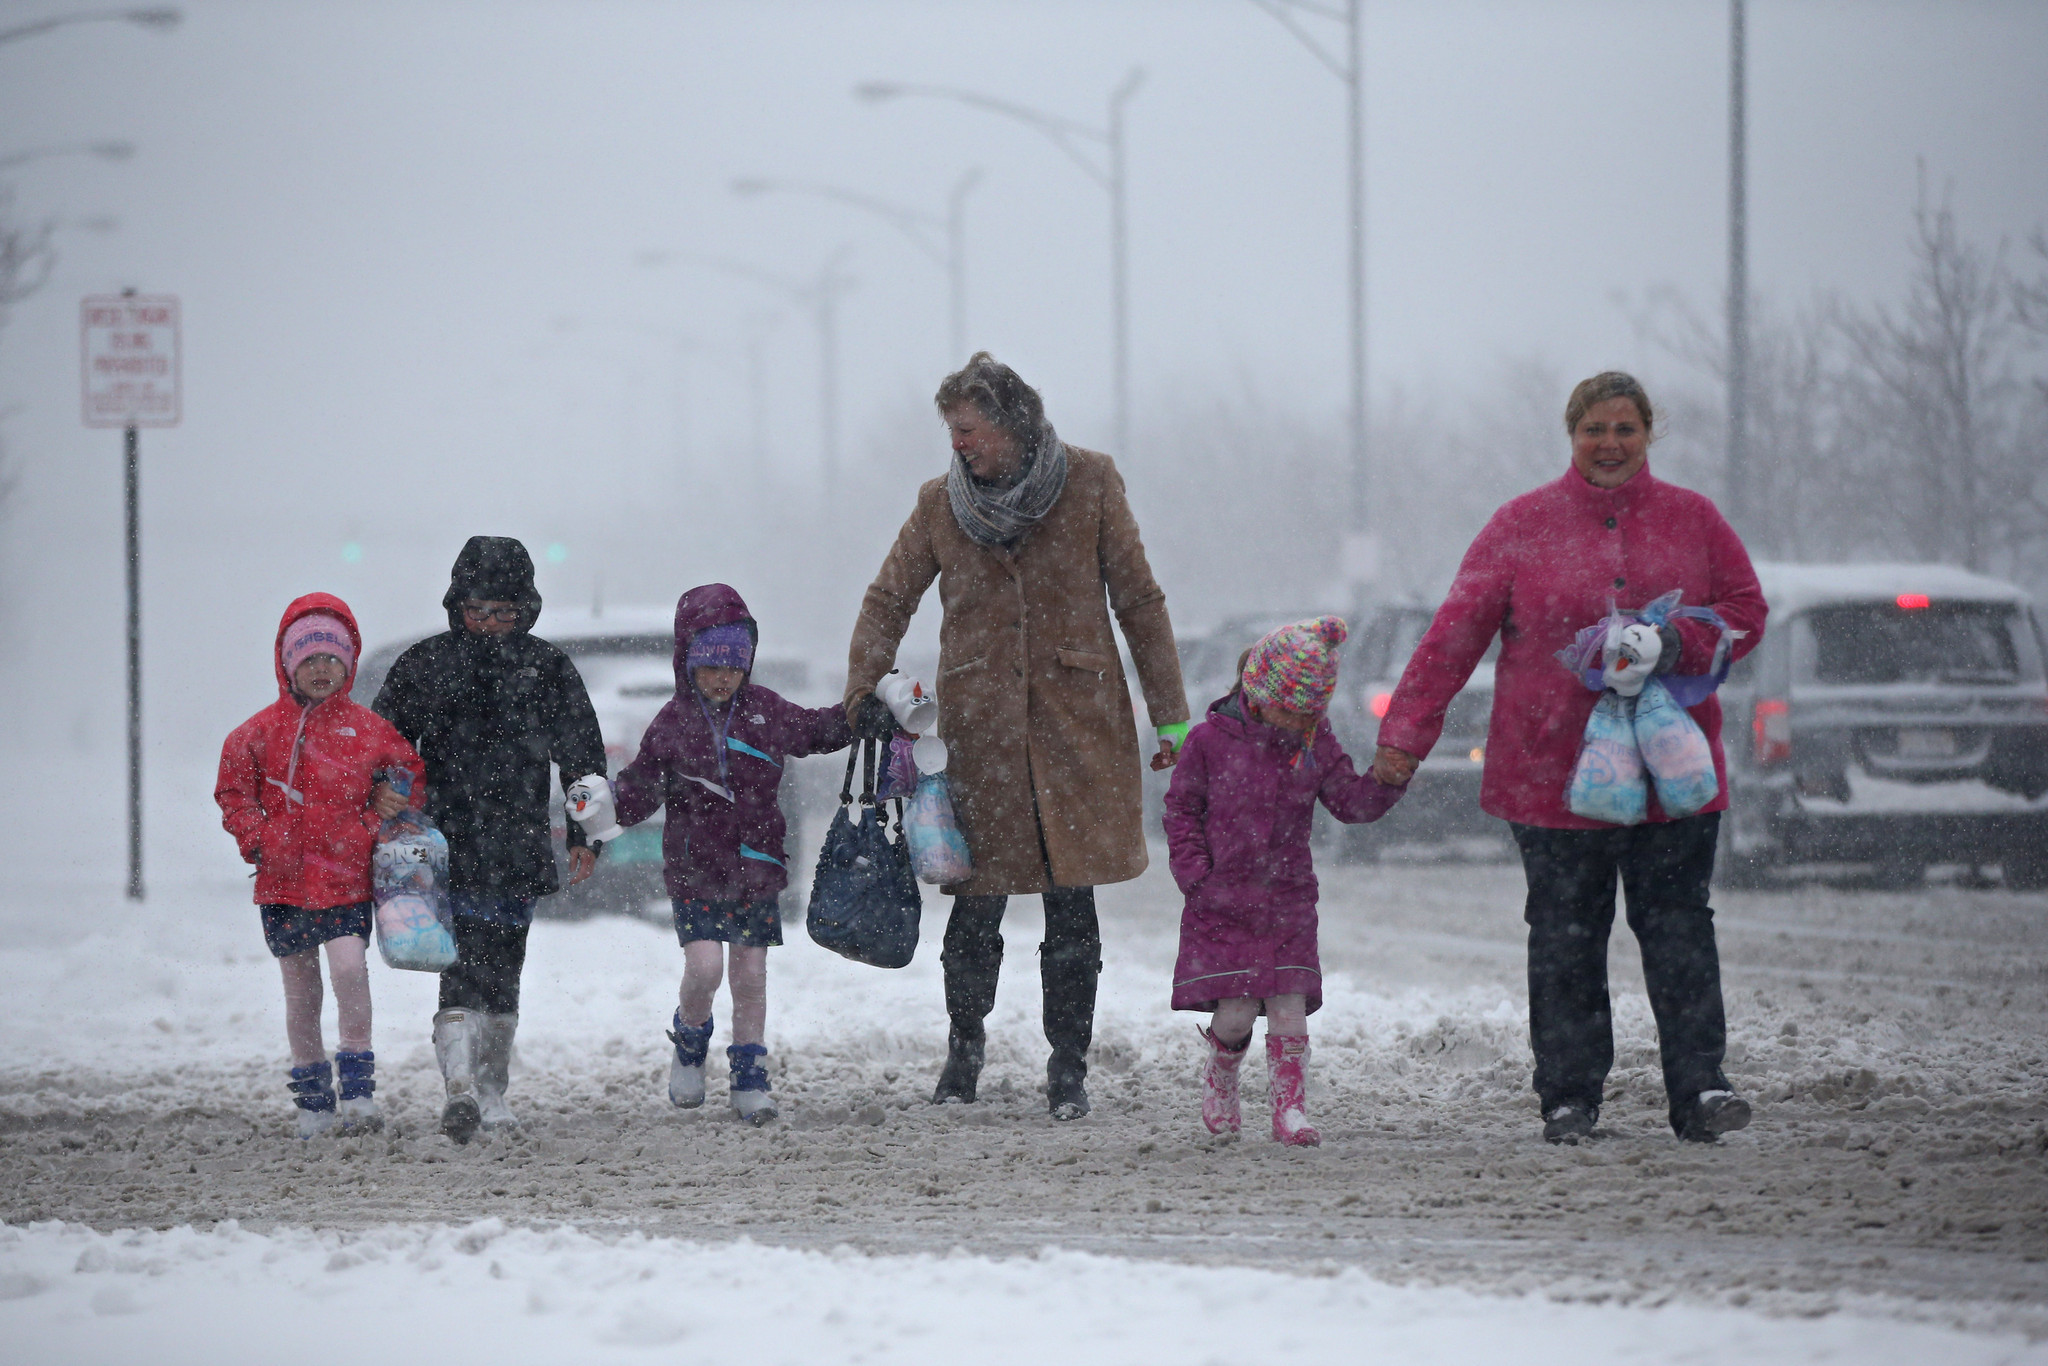 Massive storm continues into the night, threatens morning commute